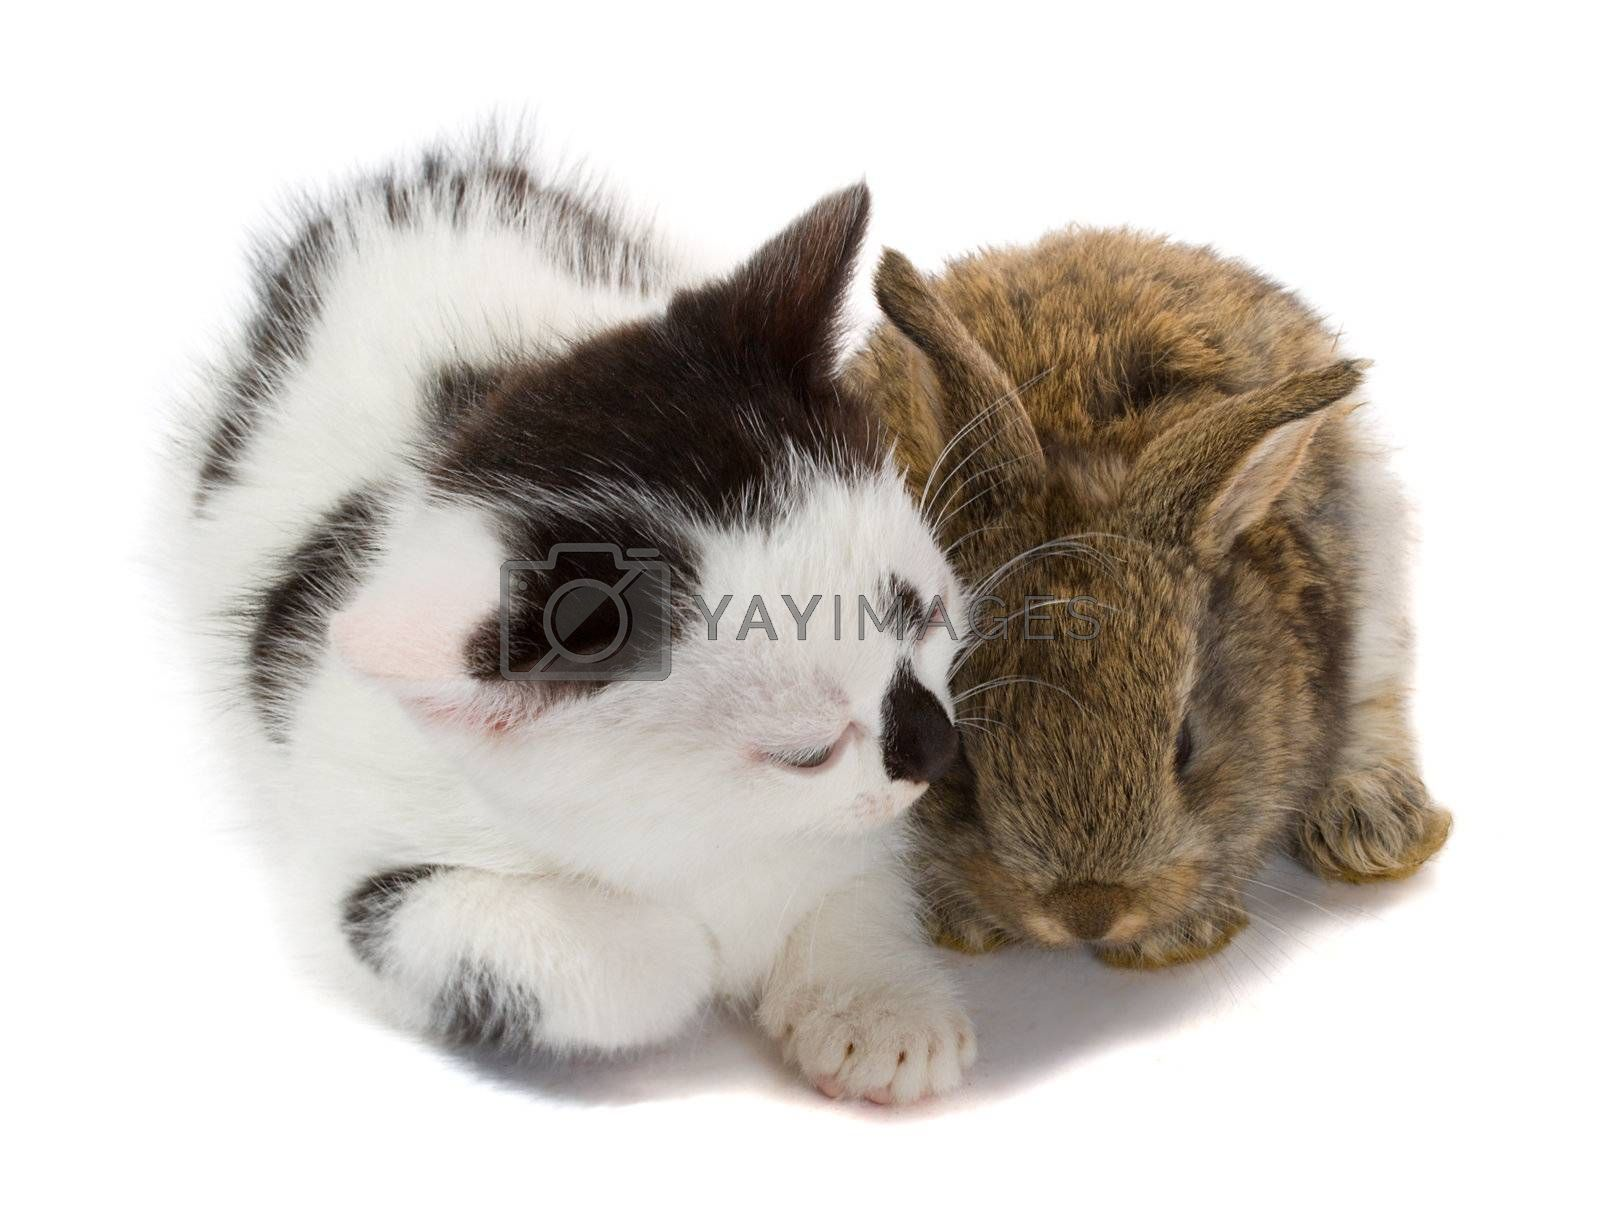 close-up kitten and baby rabbit, isolated on white